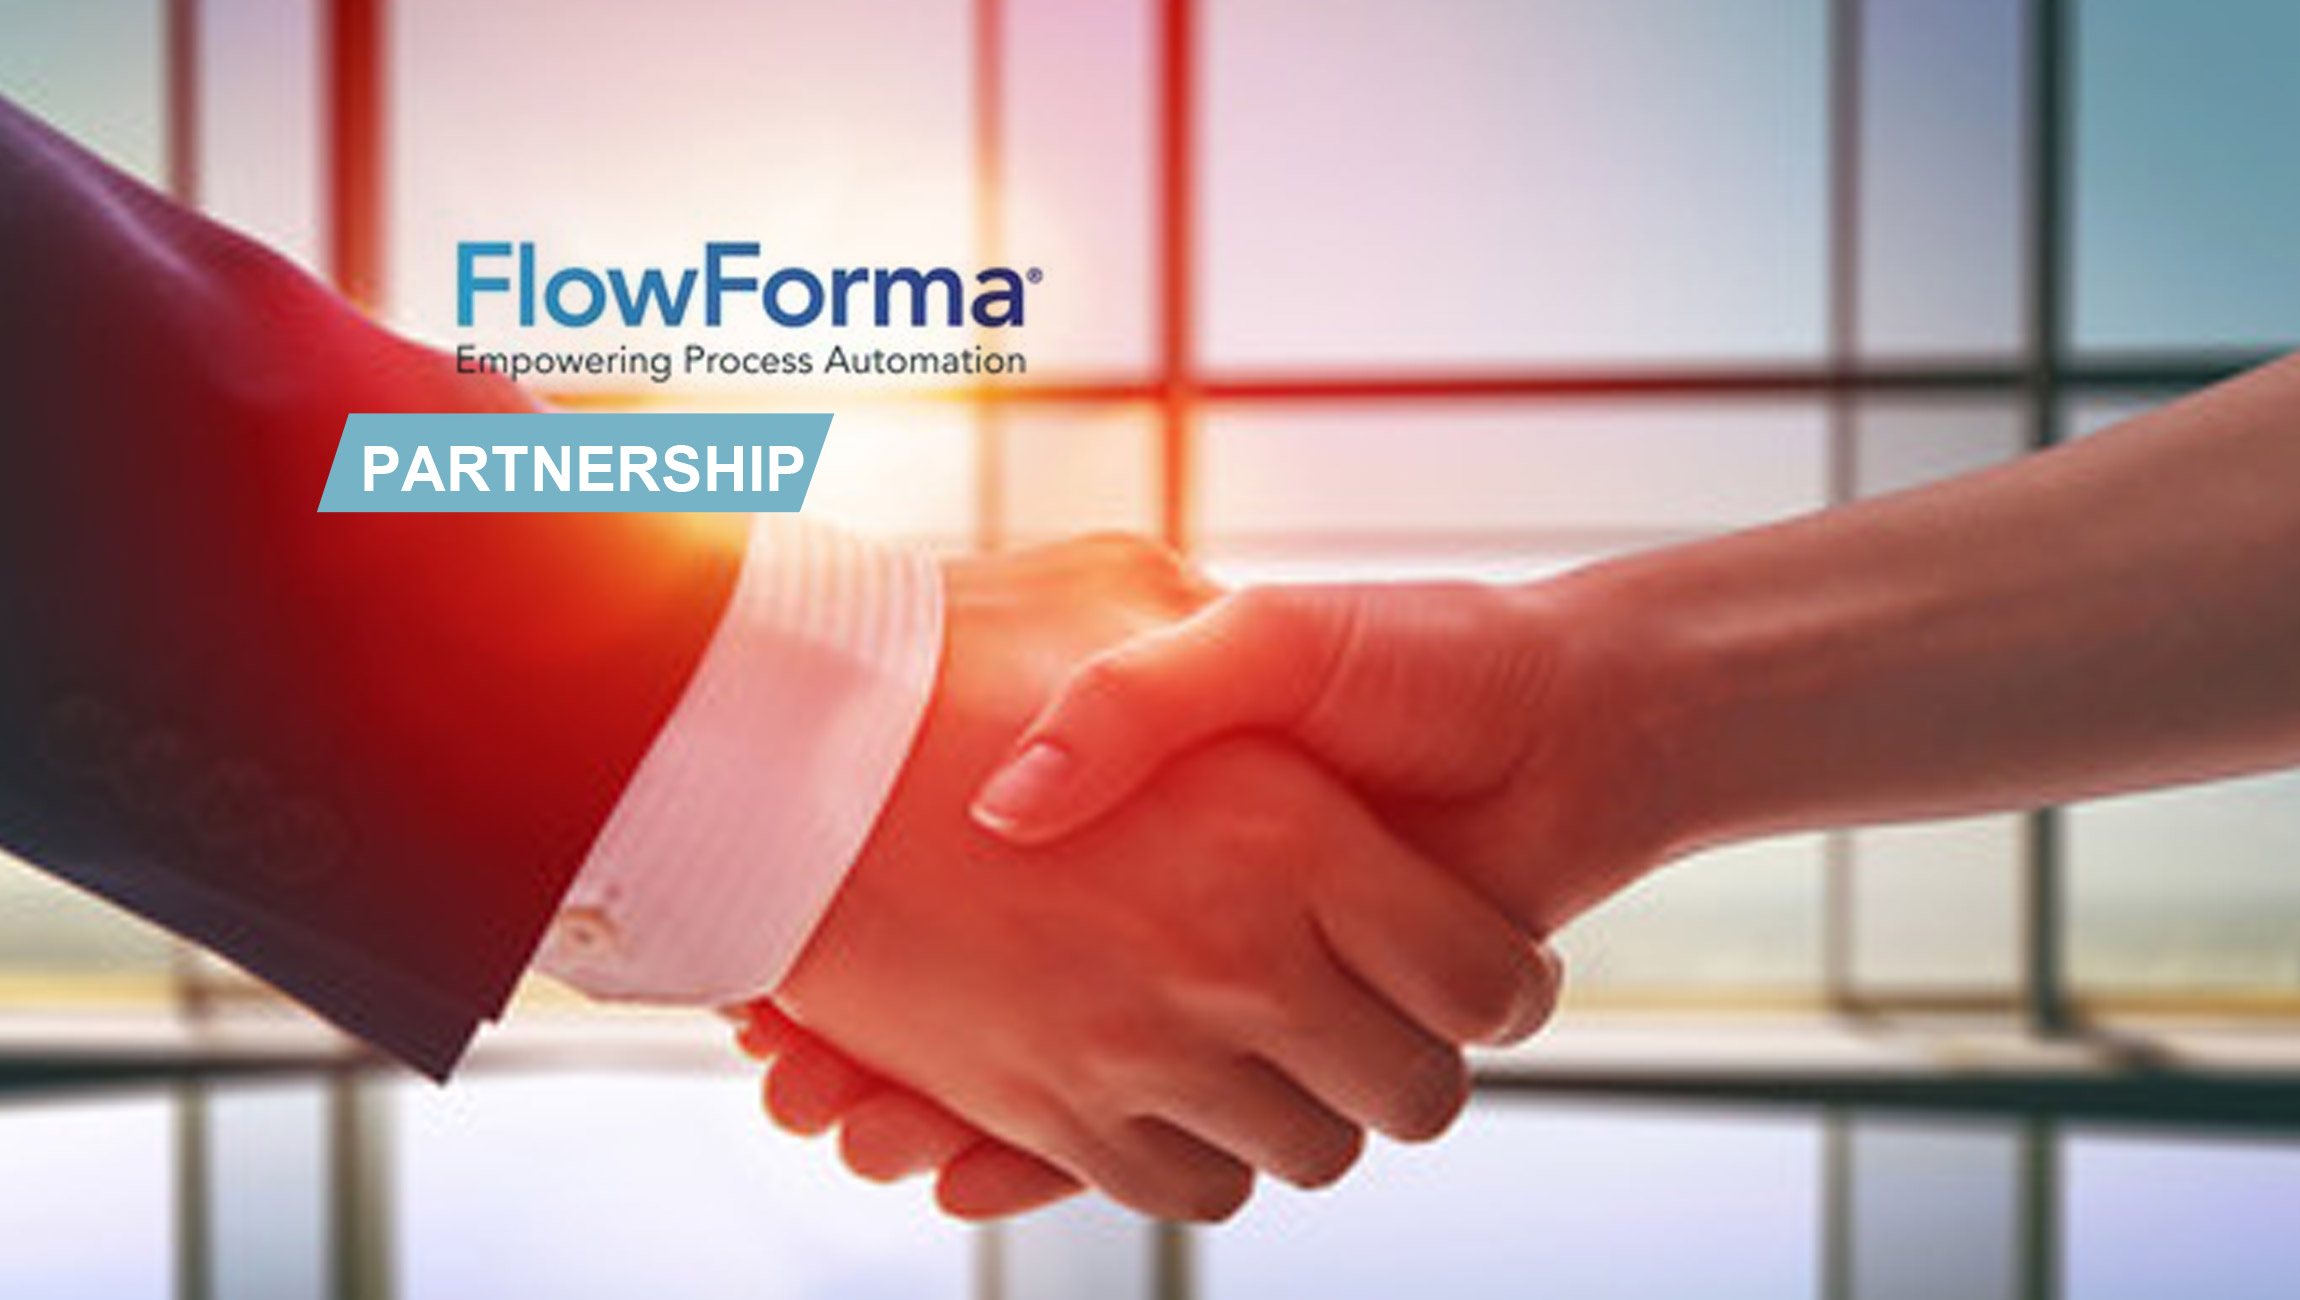 FlowForma-Selected-To-Deliver-Workflow-Software-To-NHS-In-London-Procurement-Partnership